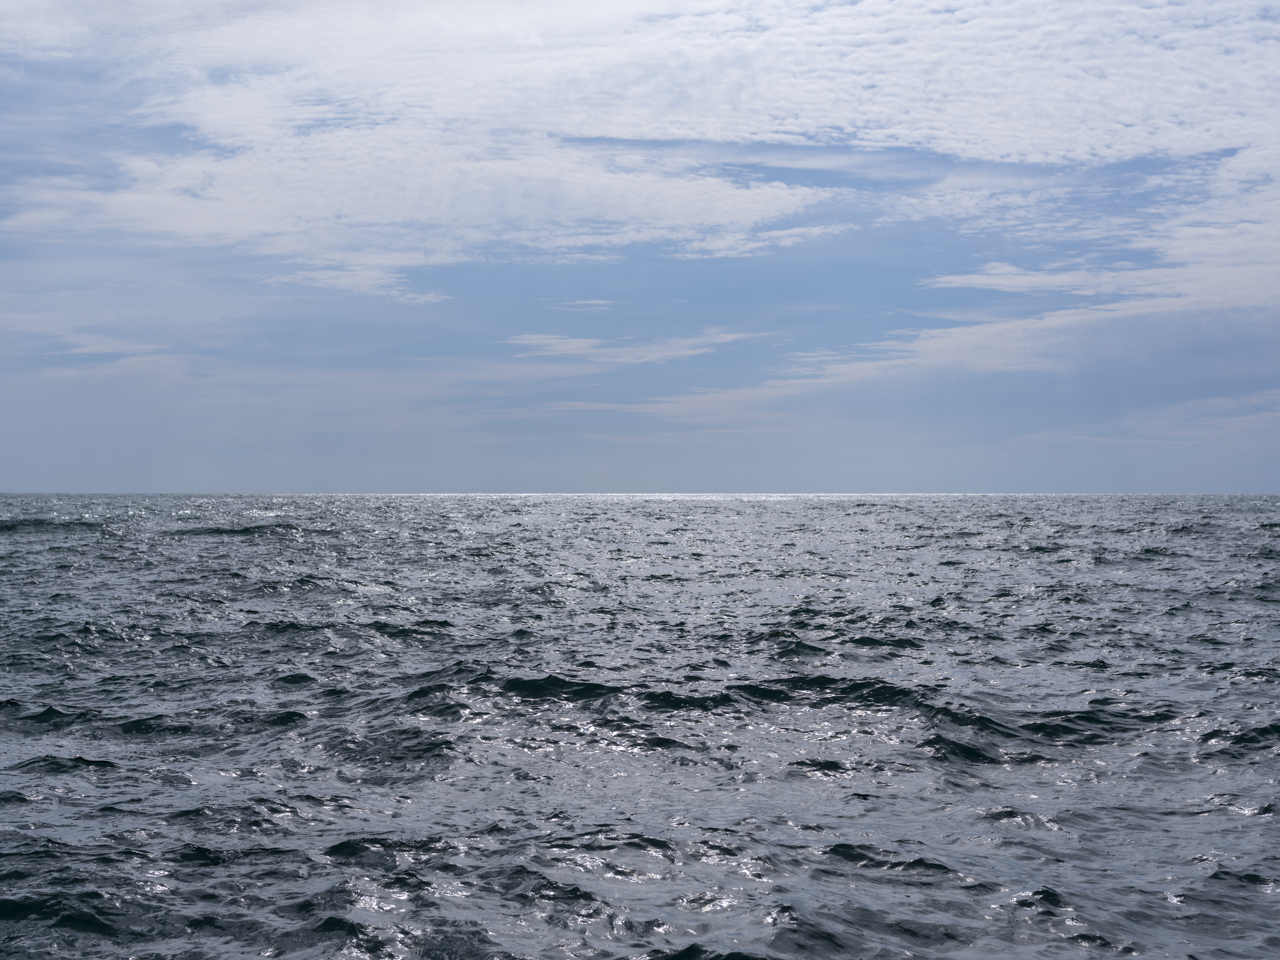 slate gray and blacks in the waters of Lake Michigan while thin lace-like clouds drape a blue sky